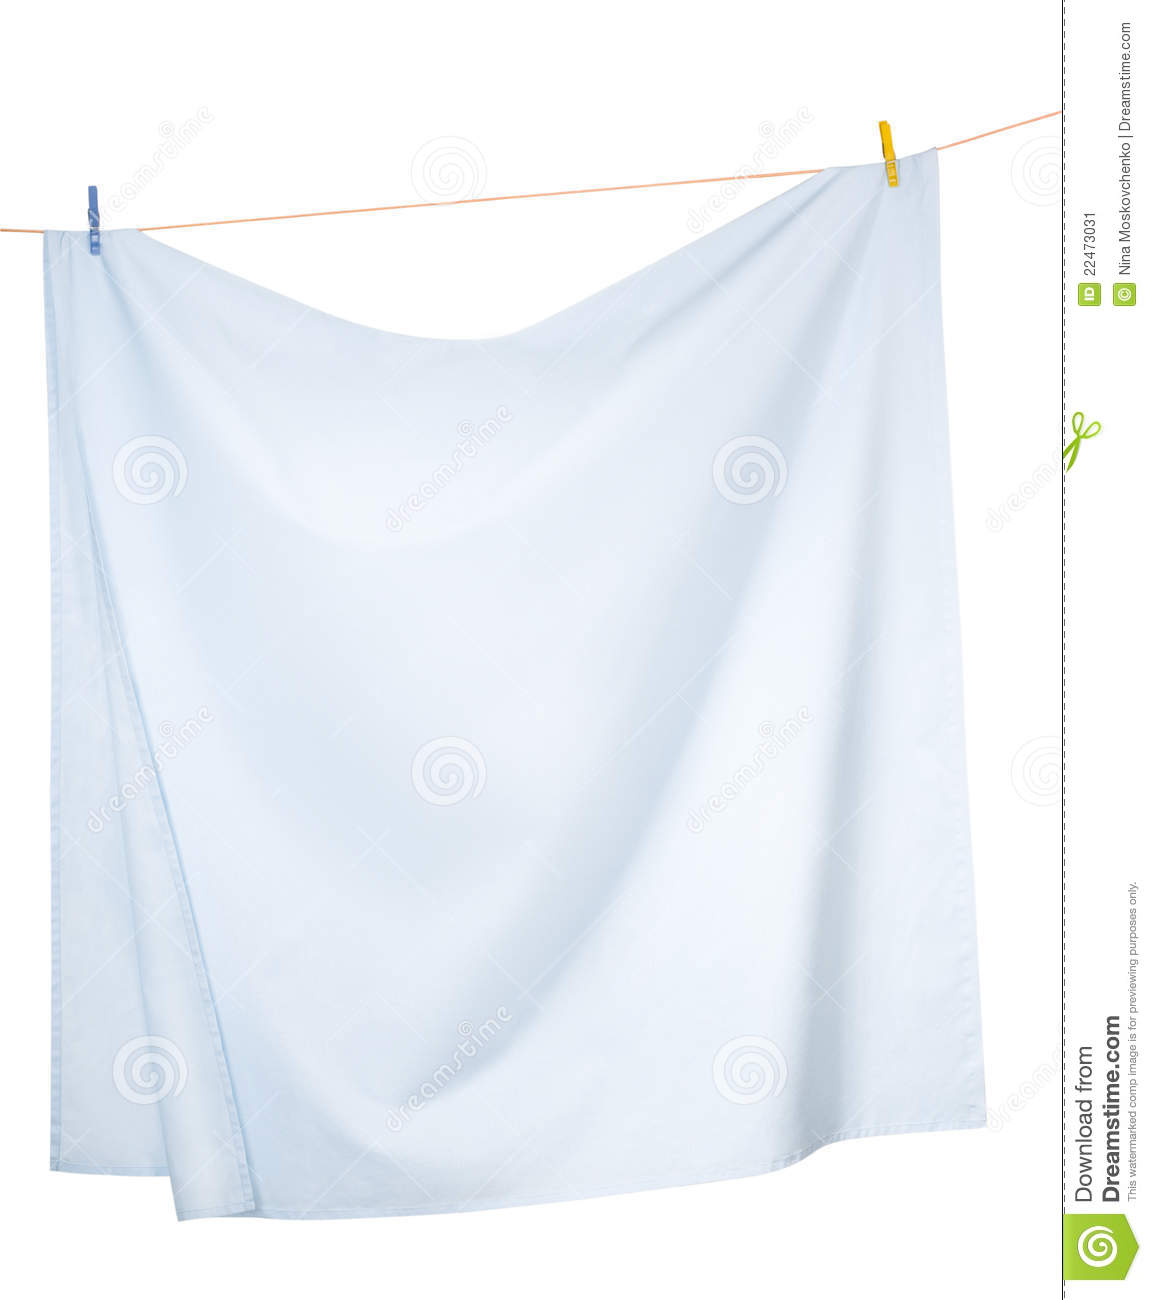 Bed sheet hanging - Sheets Hanging On A Rope White Sheets Hanging